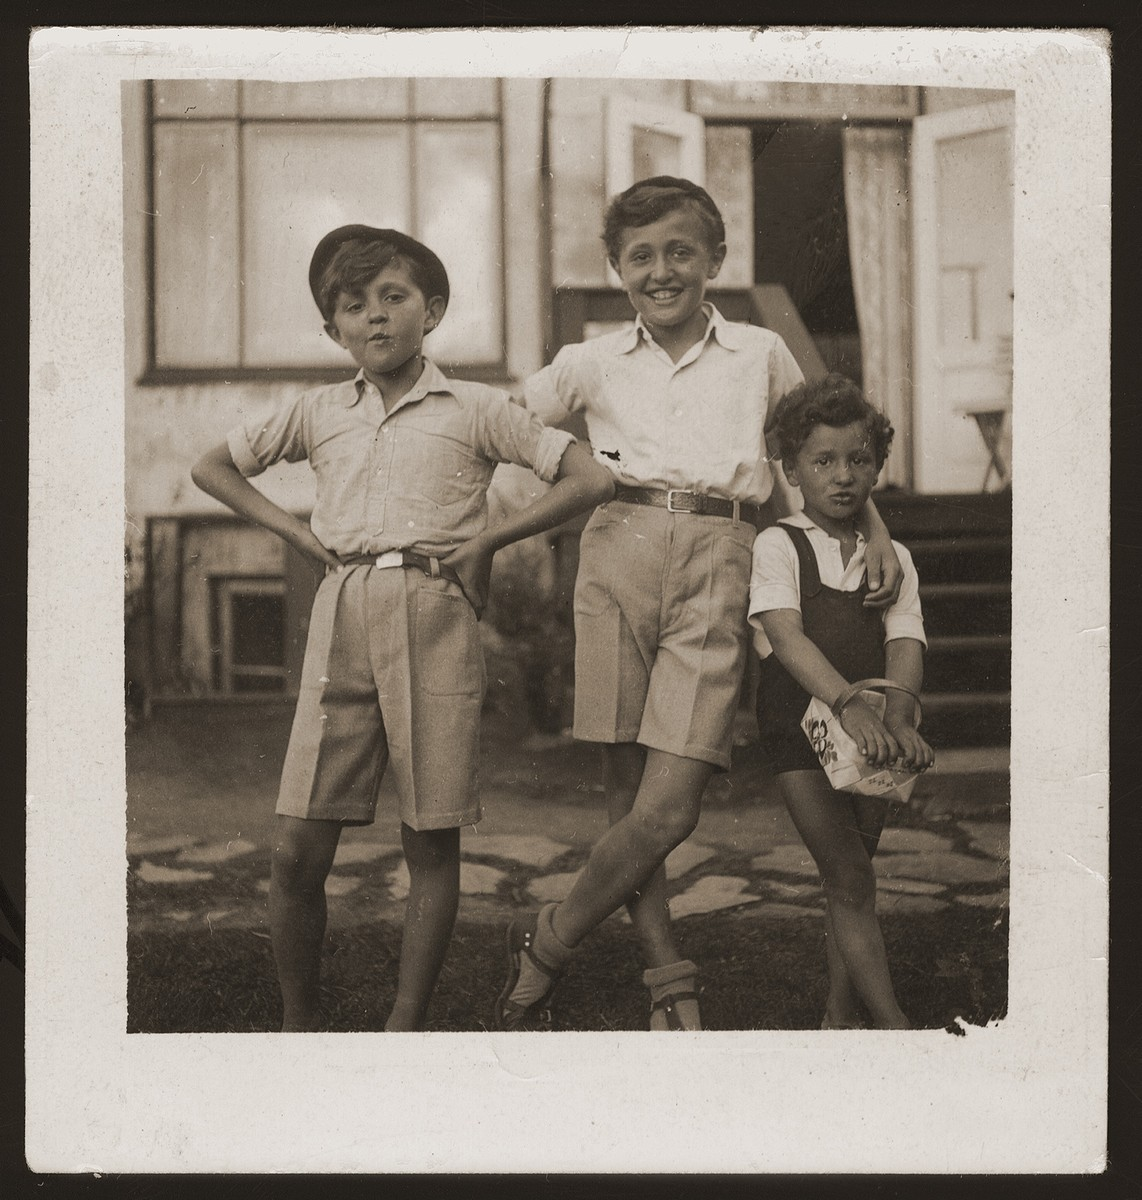 Milan, Leo and Gus Goldberger in front of their family's summer home in Rungsted.